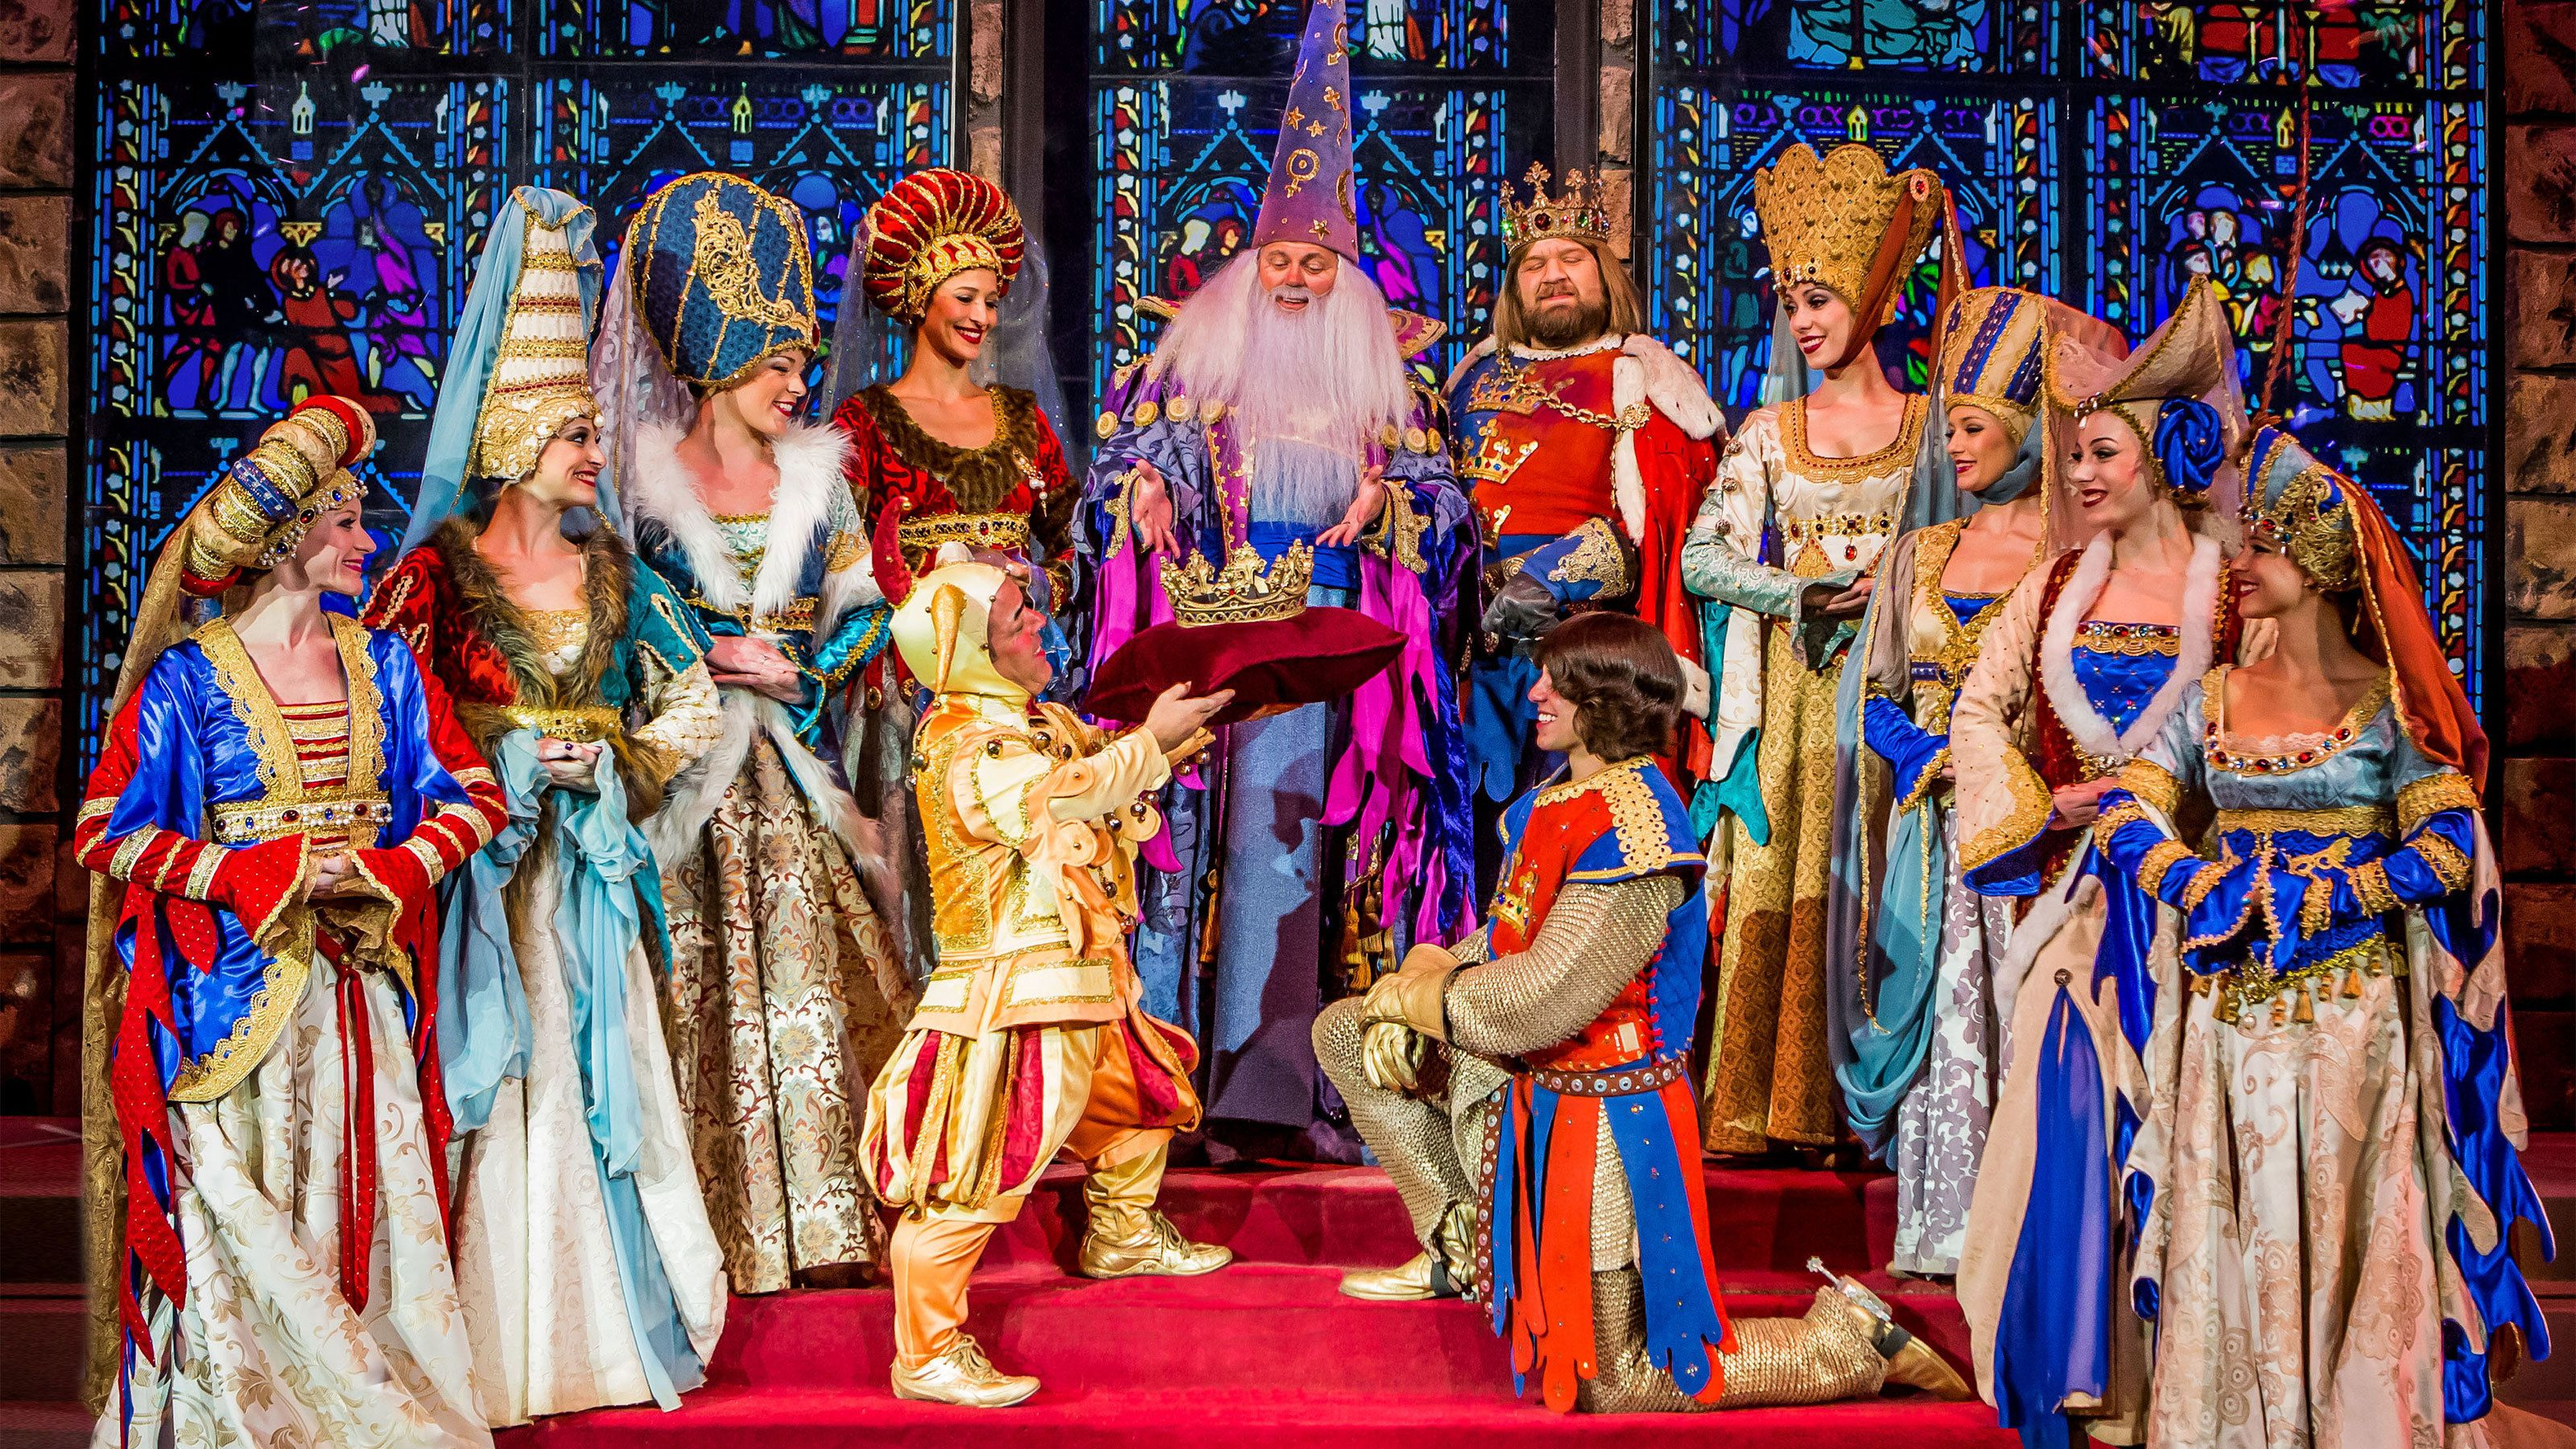 A new king is crowned at the tournament of kings dinner show at the Excalibur hotel and casino